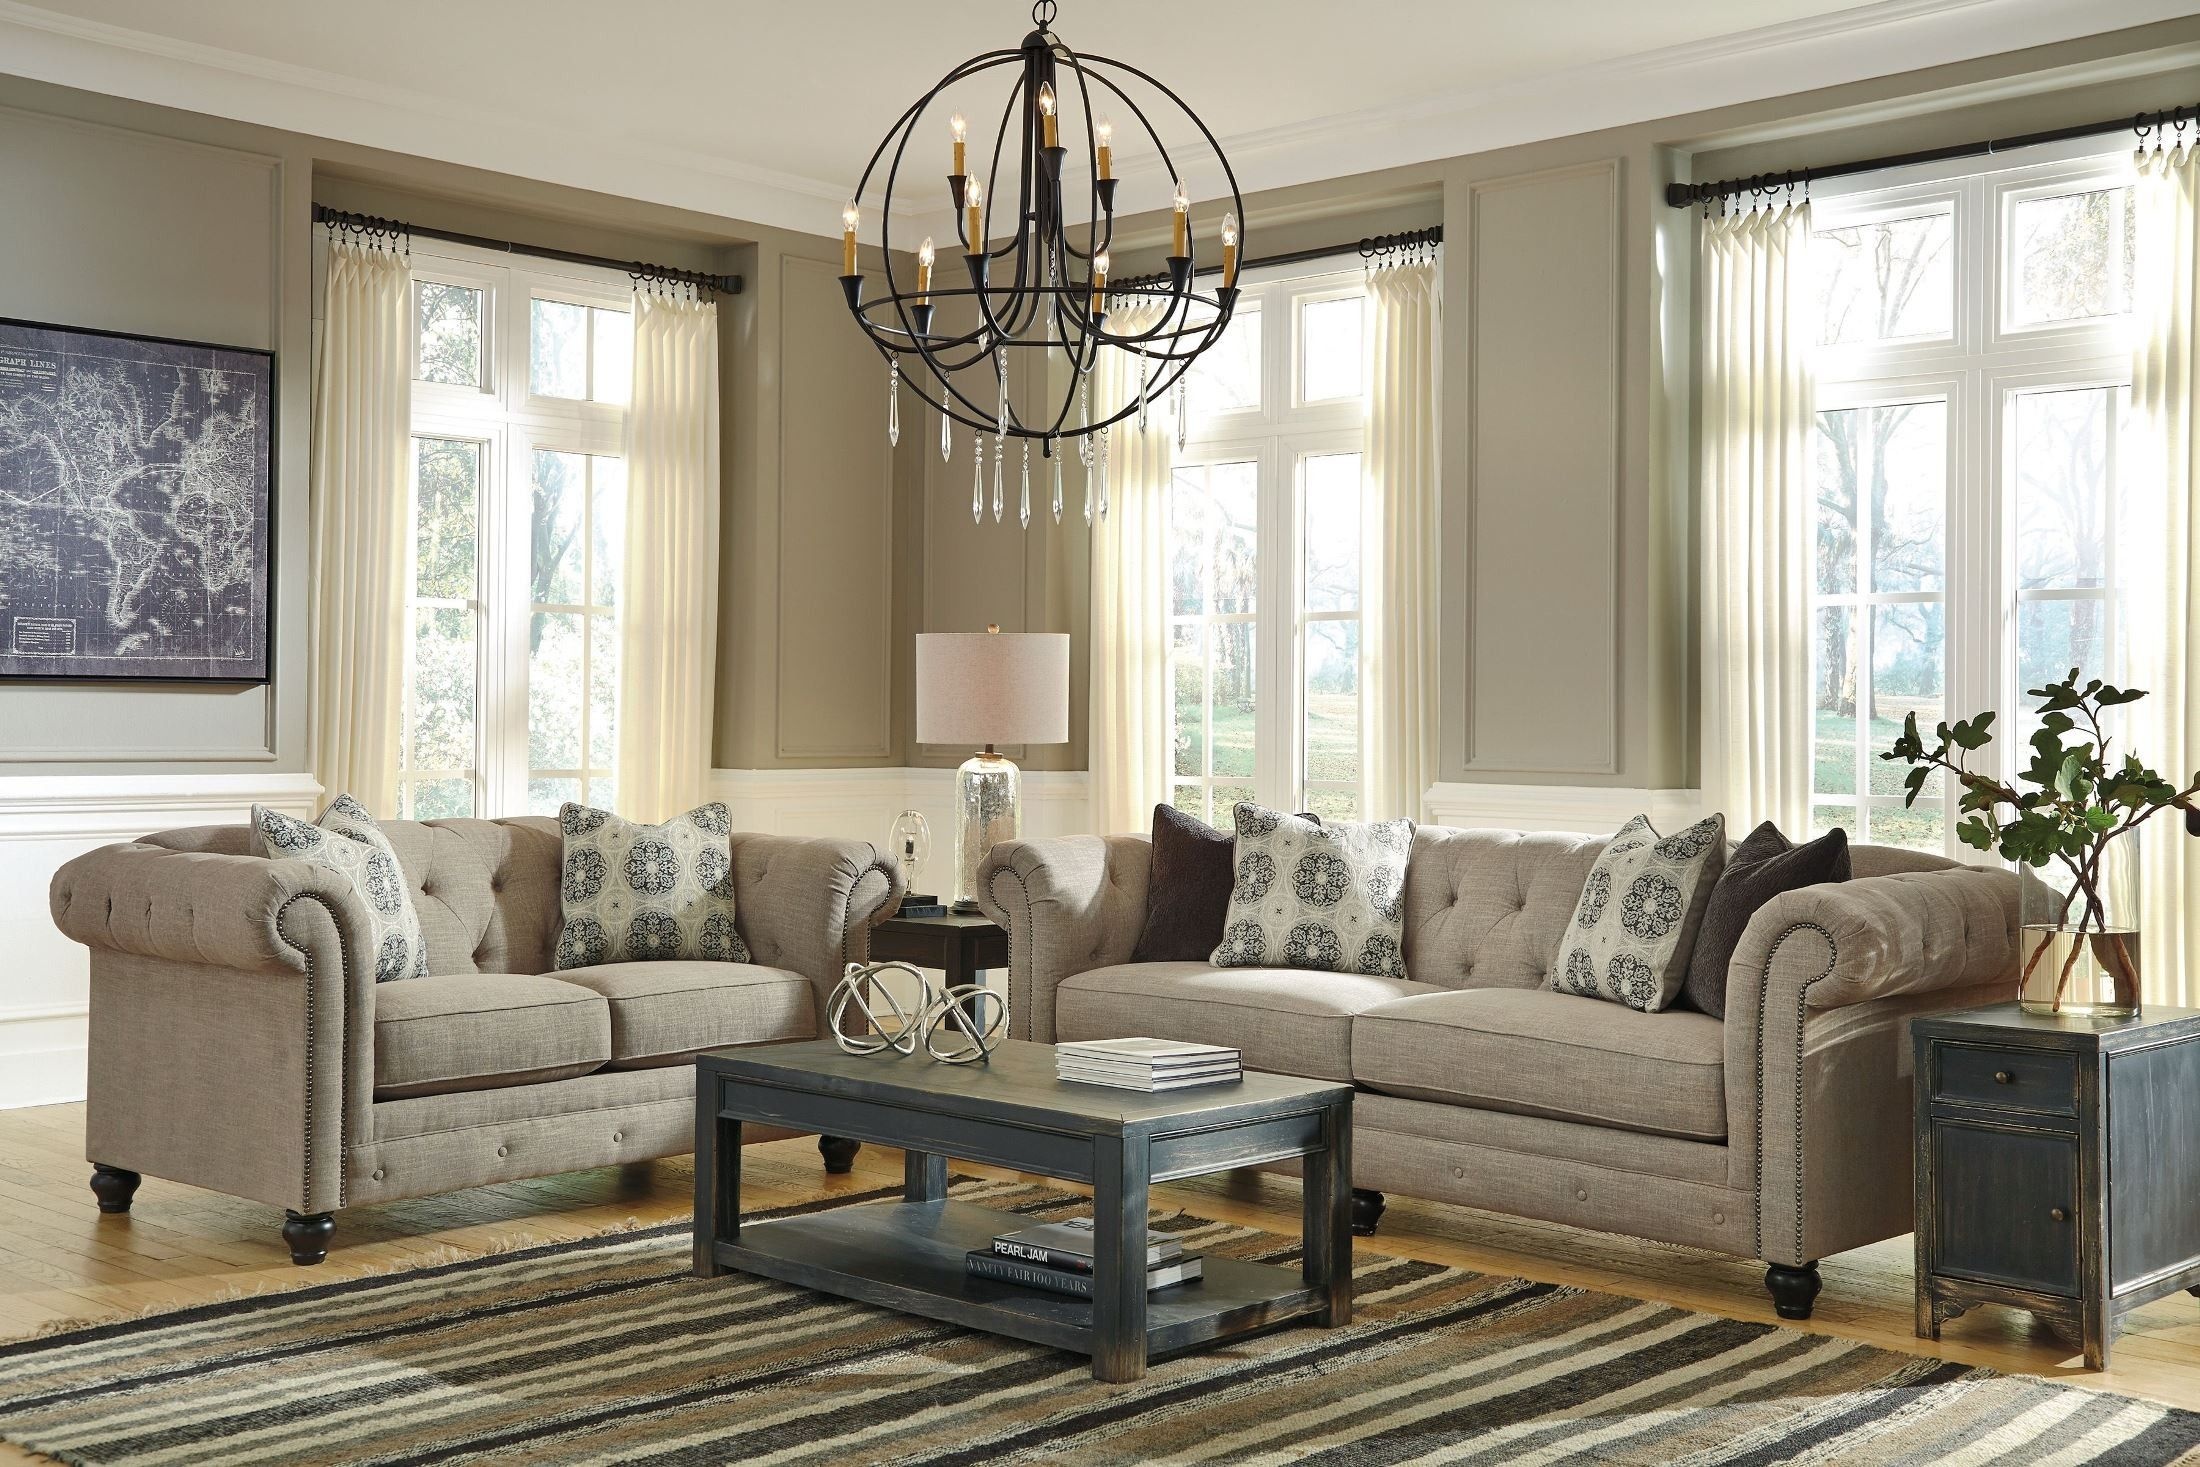 Living Room Sofa: Azlyn Loveseat By Ashley Furniture At Kensington Furniture.  This Is The